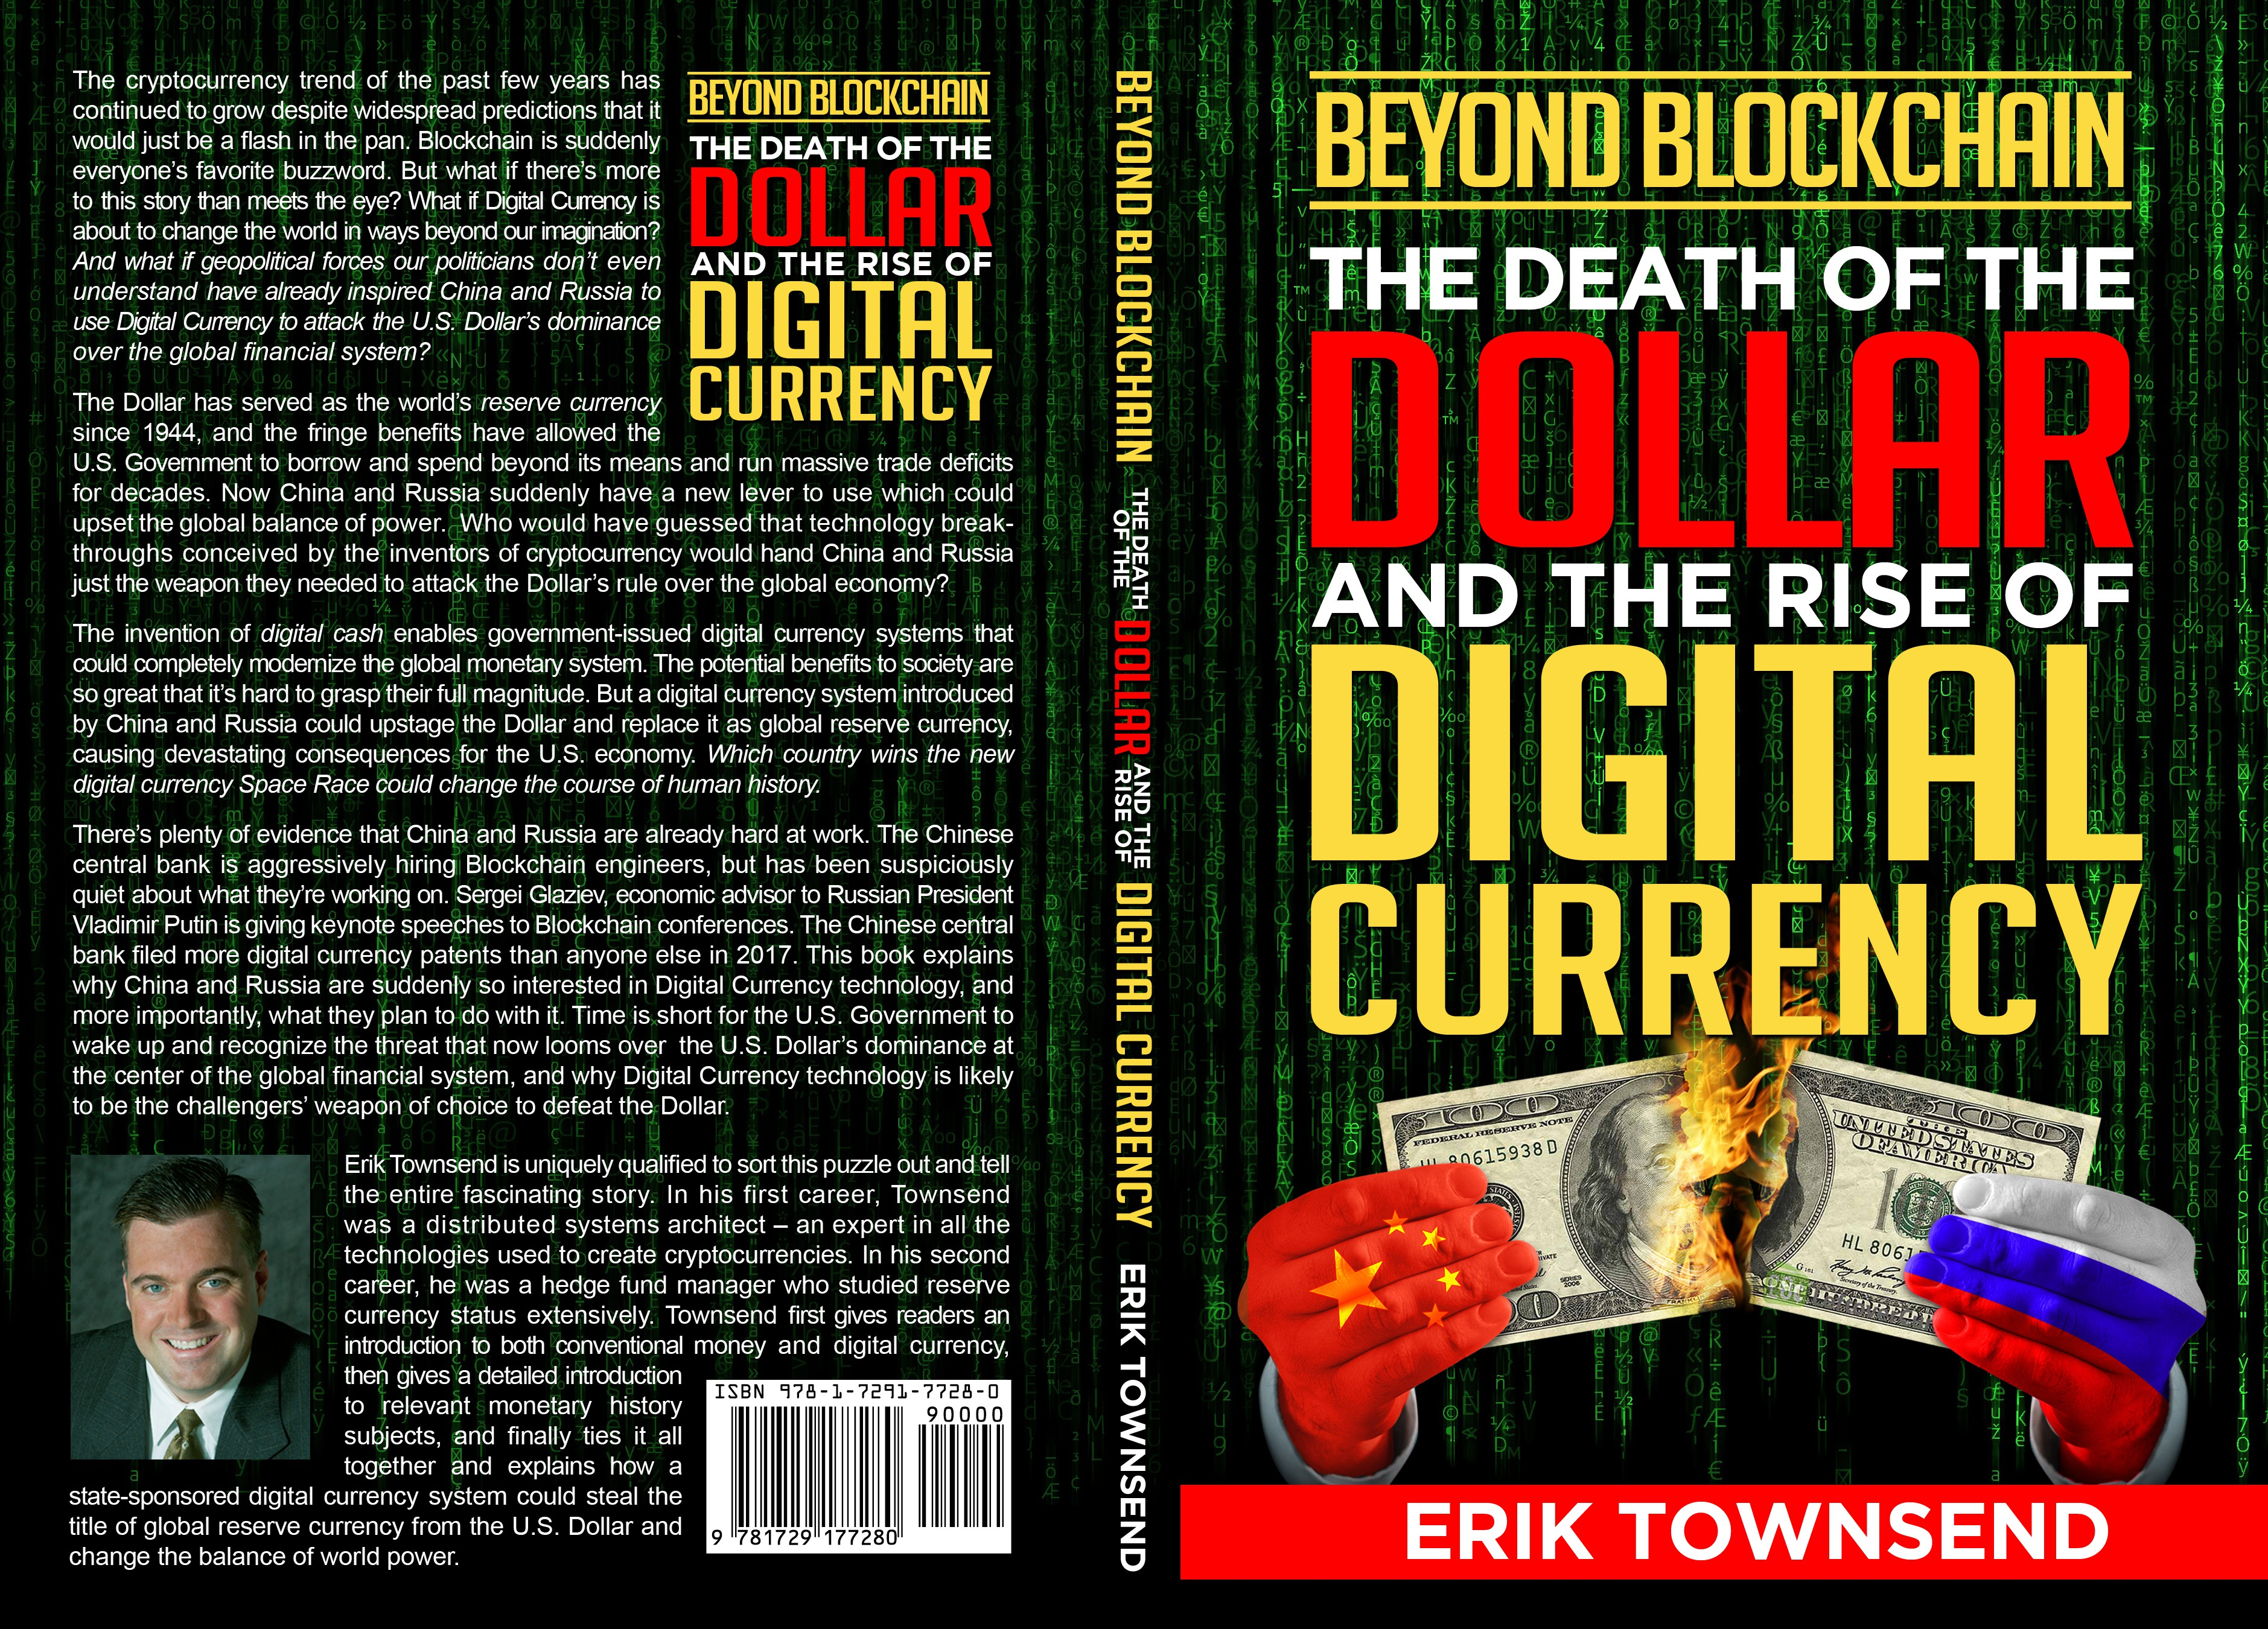 Design the cover for the book predicting the demise of the U.S. Dollar as global reserve currency!